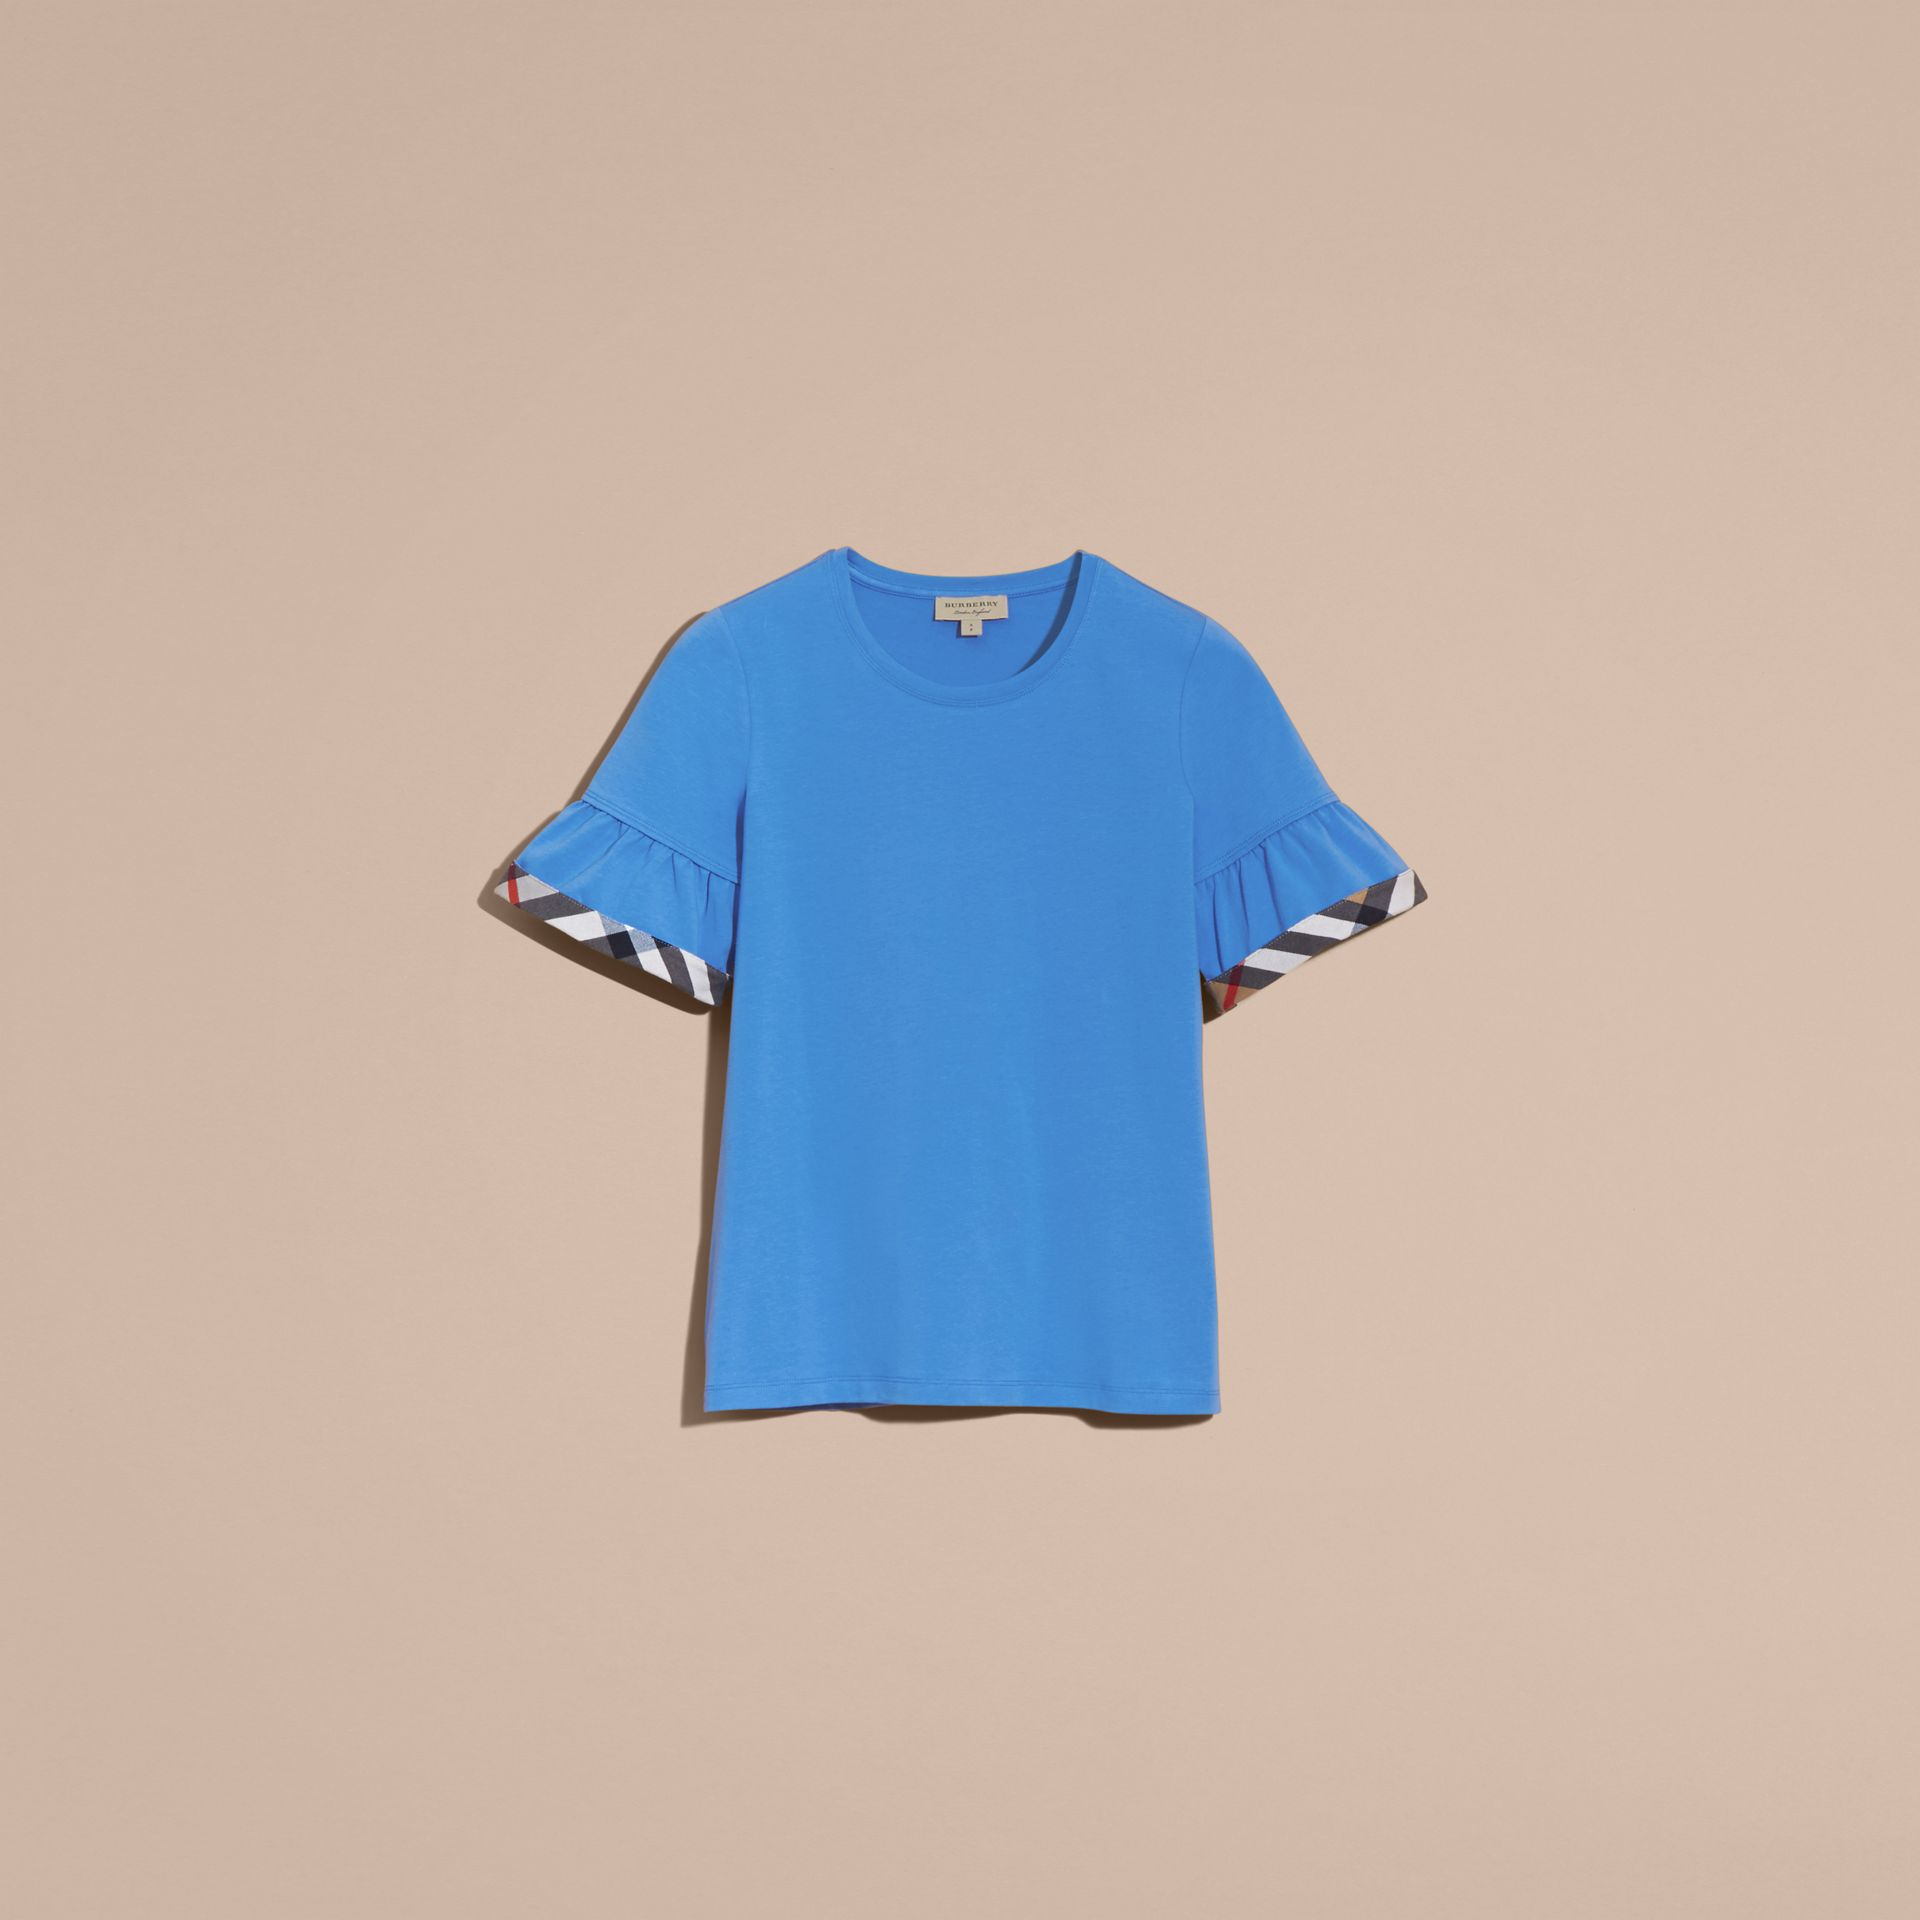 Bright hydrangea blue Stretch Cotton T-shirt with Check Trim Ruffles Bright Hydrangea Blue - gallery image 4